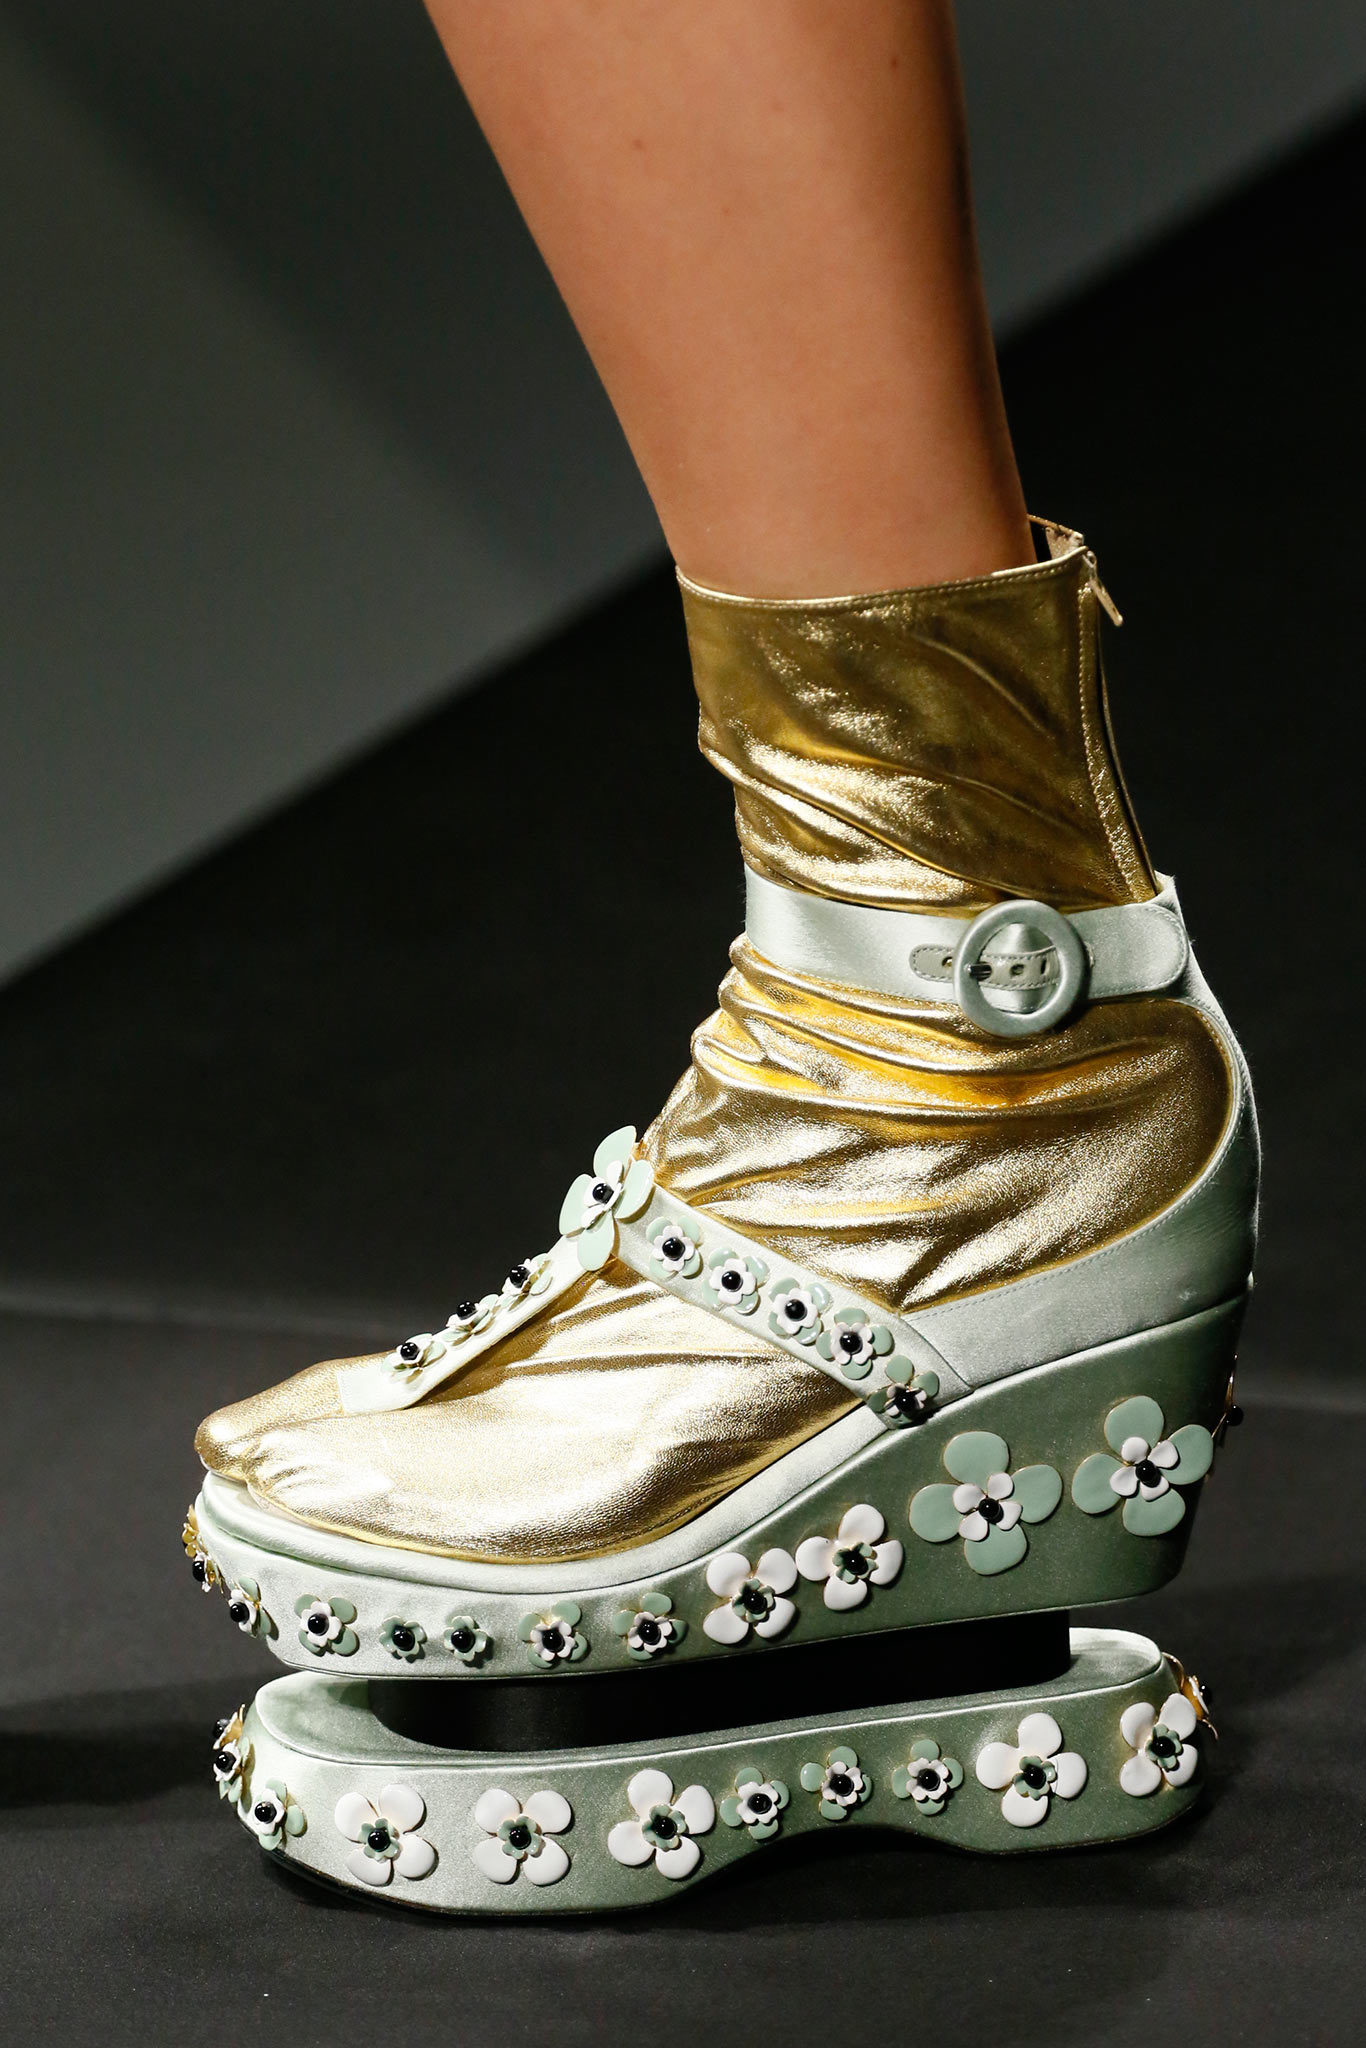 prada-spring-2013-detail-shoes